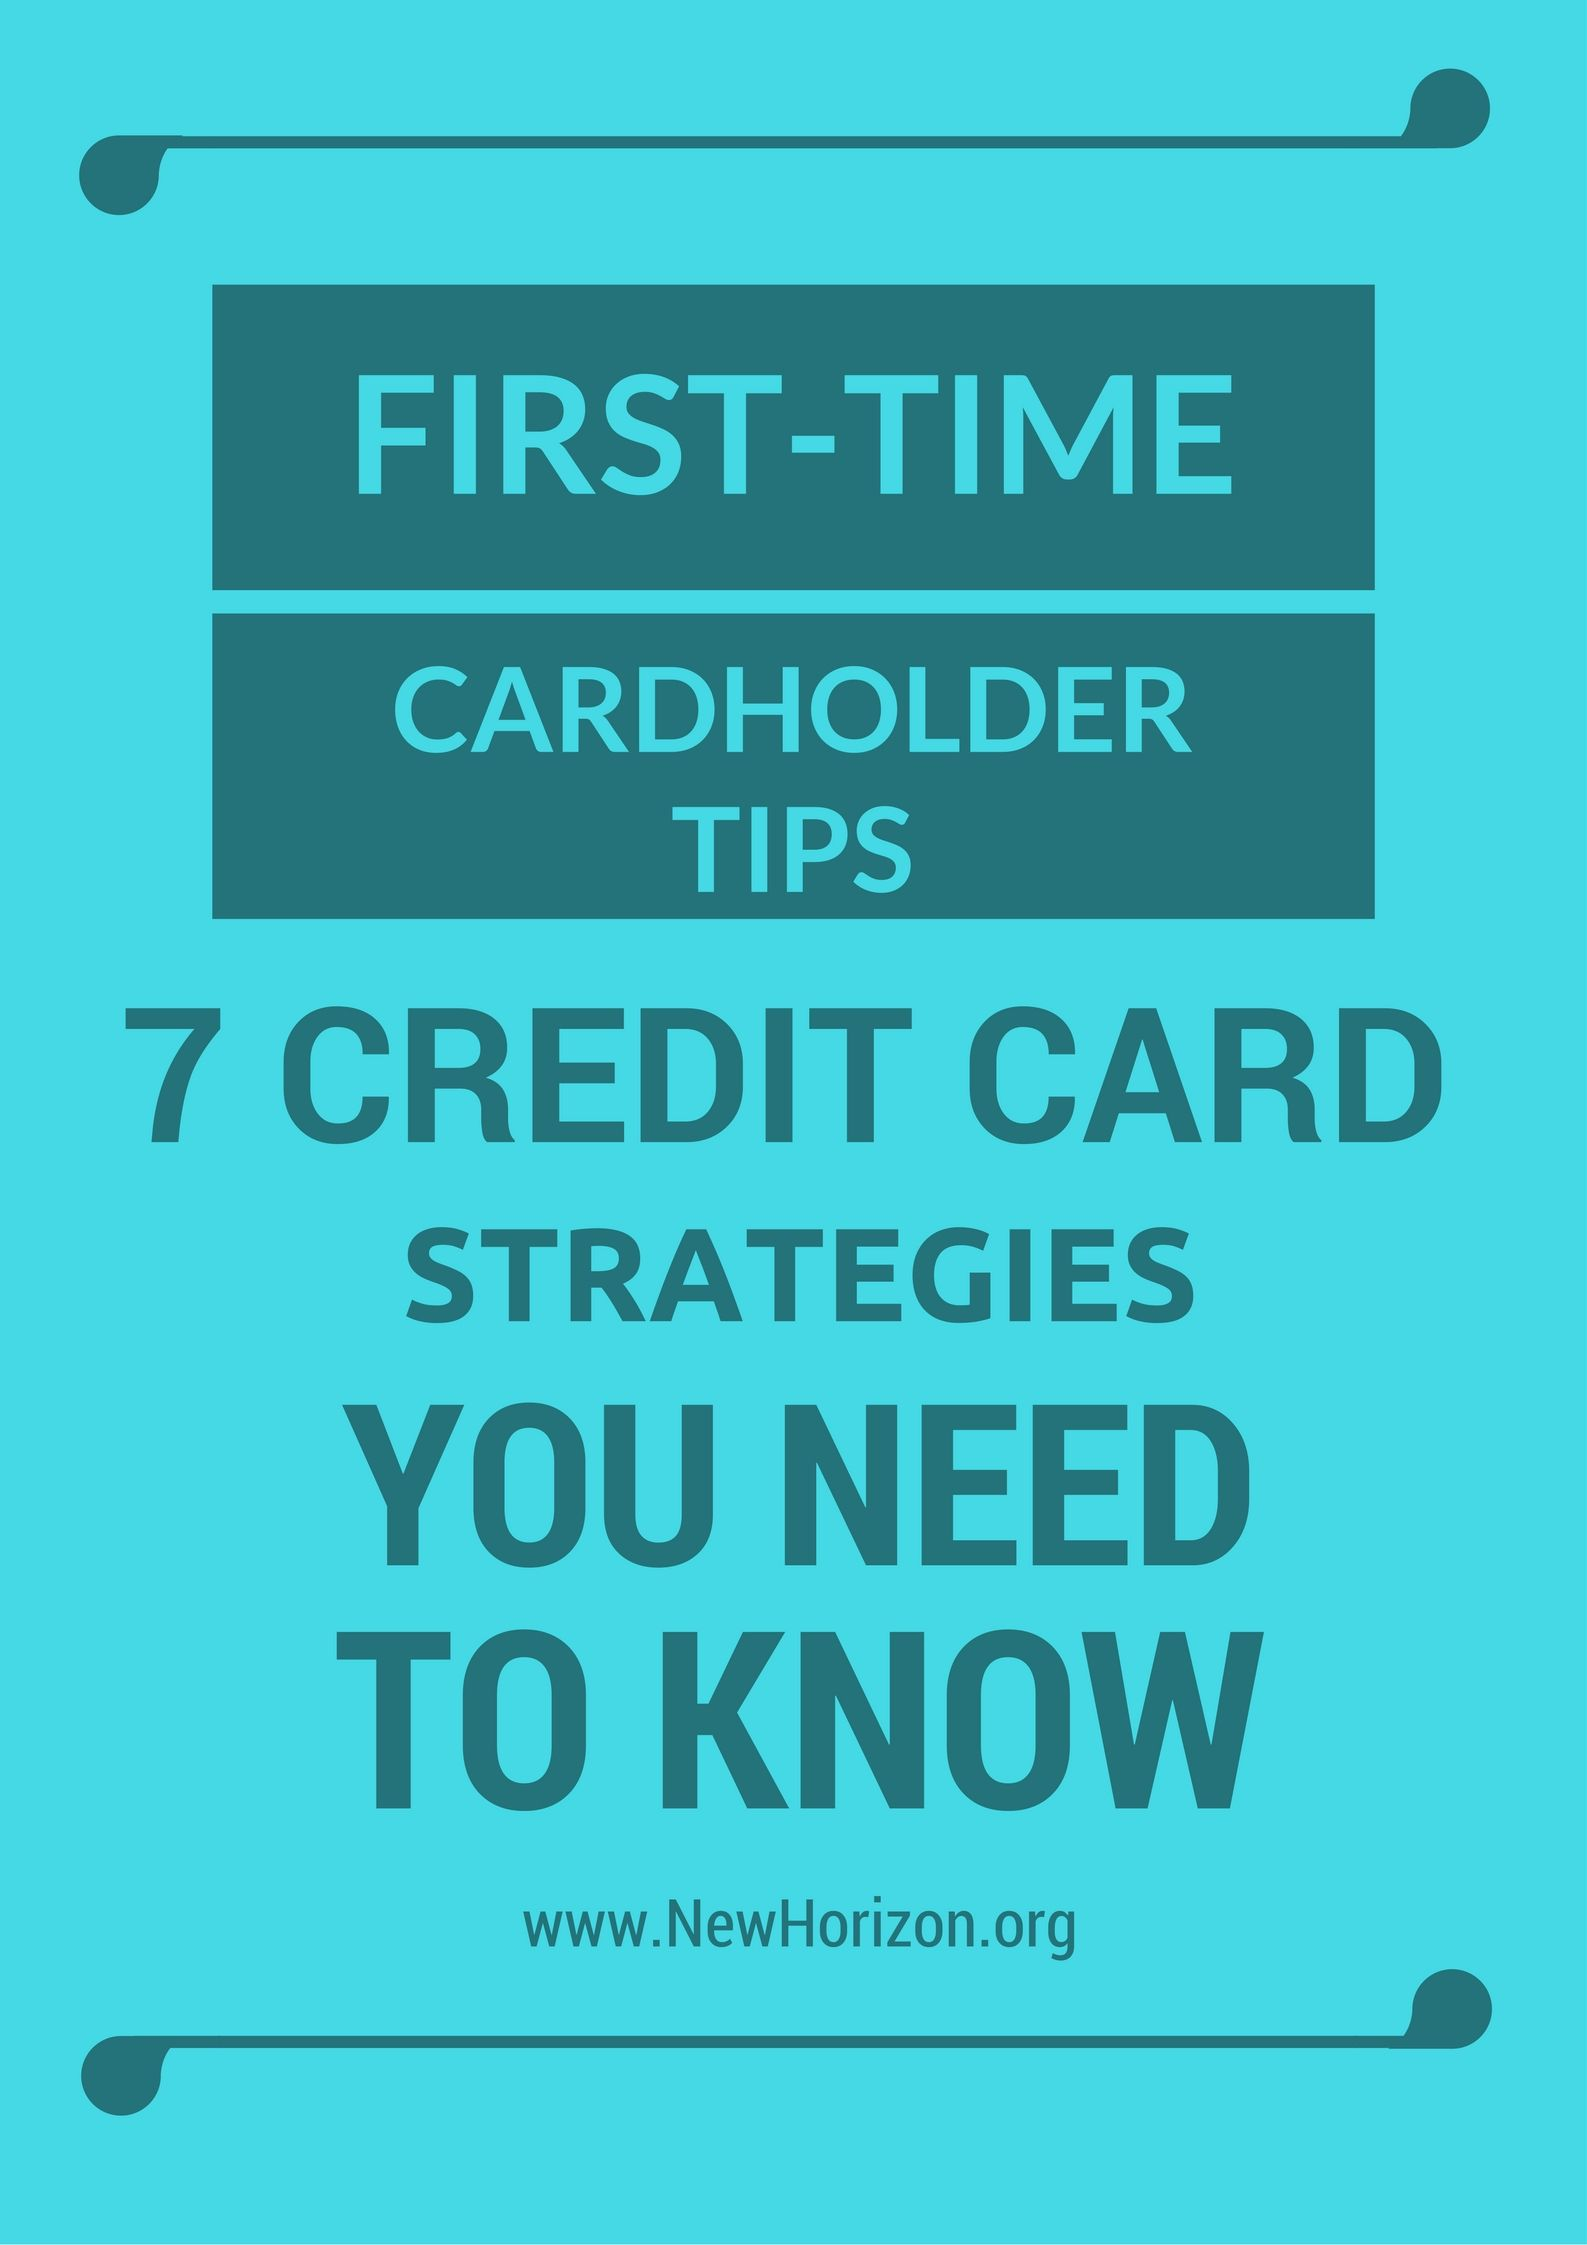 first-time cardholder tips